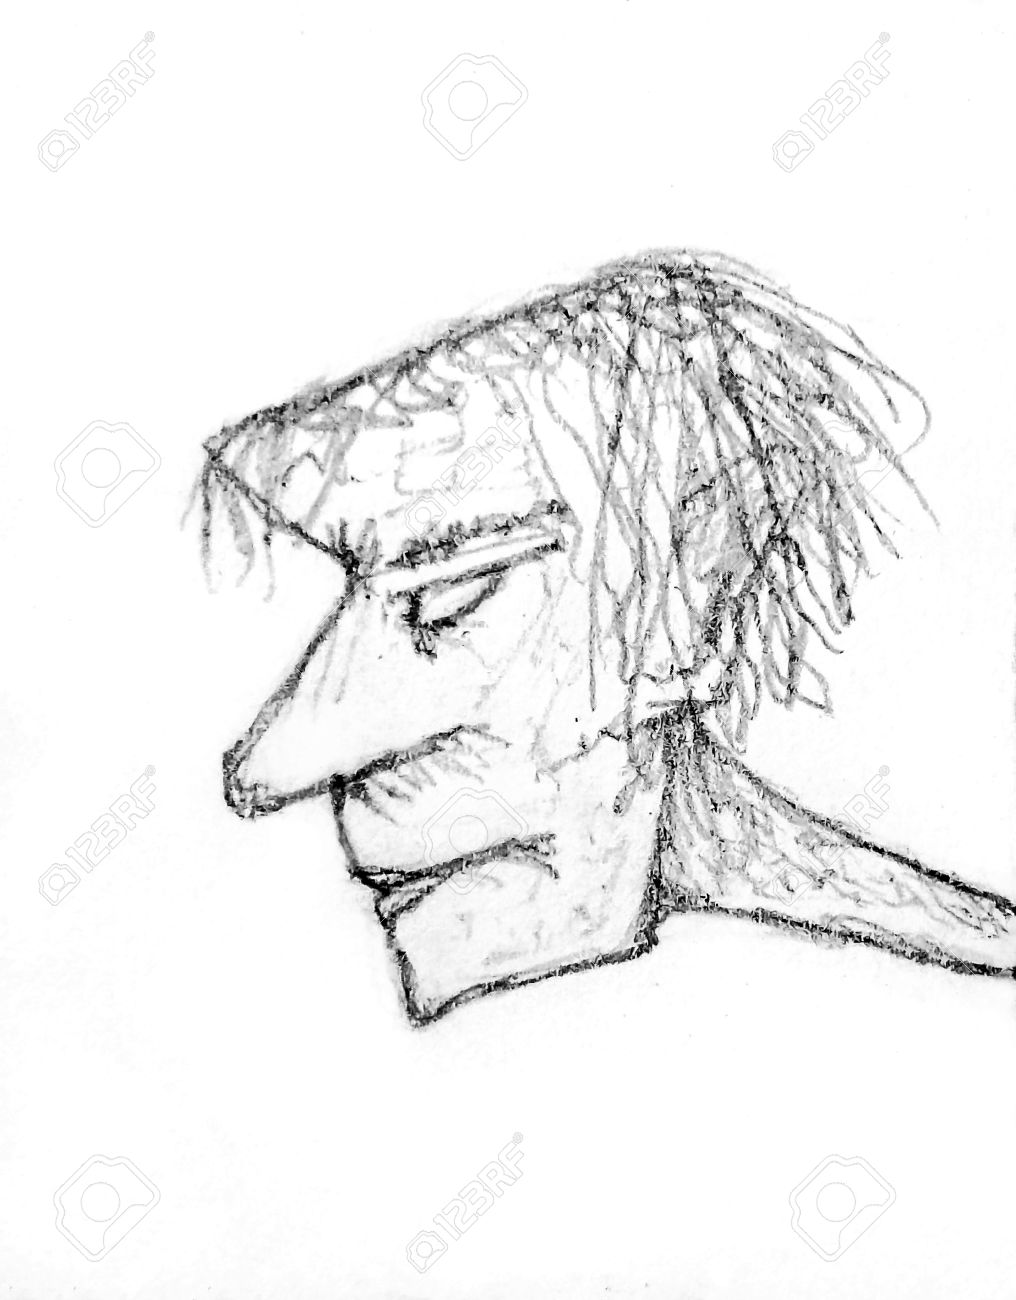 Illustration pencil drawing raster illustration in gray tones of a man head with big noise and mad or angry expression in side view